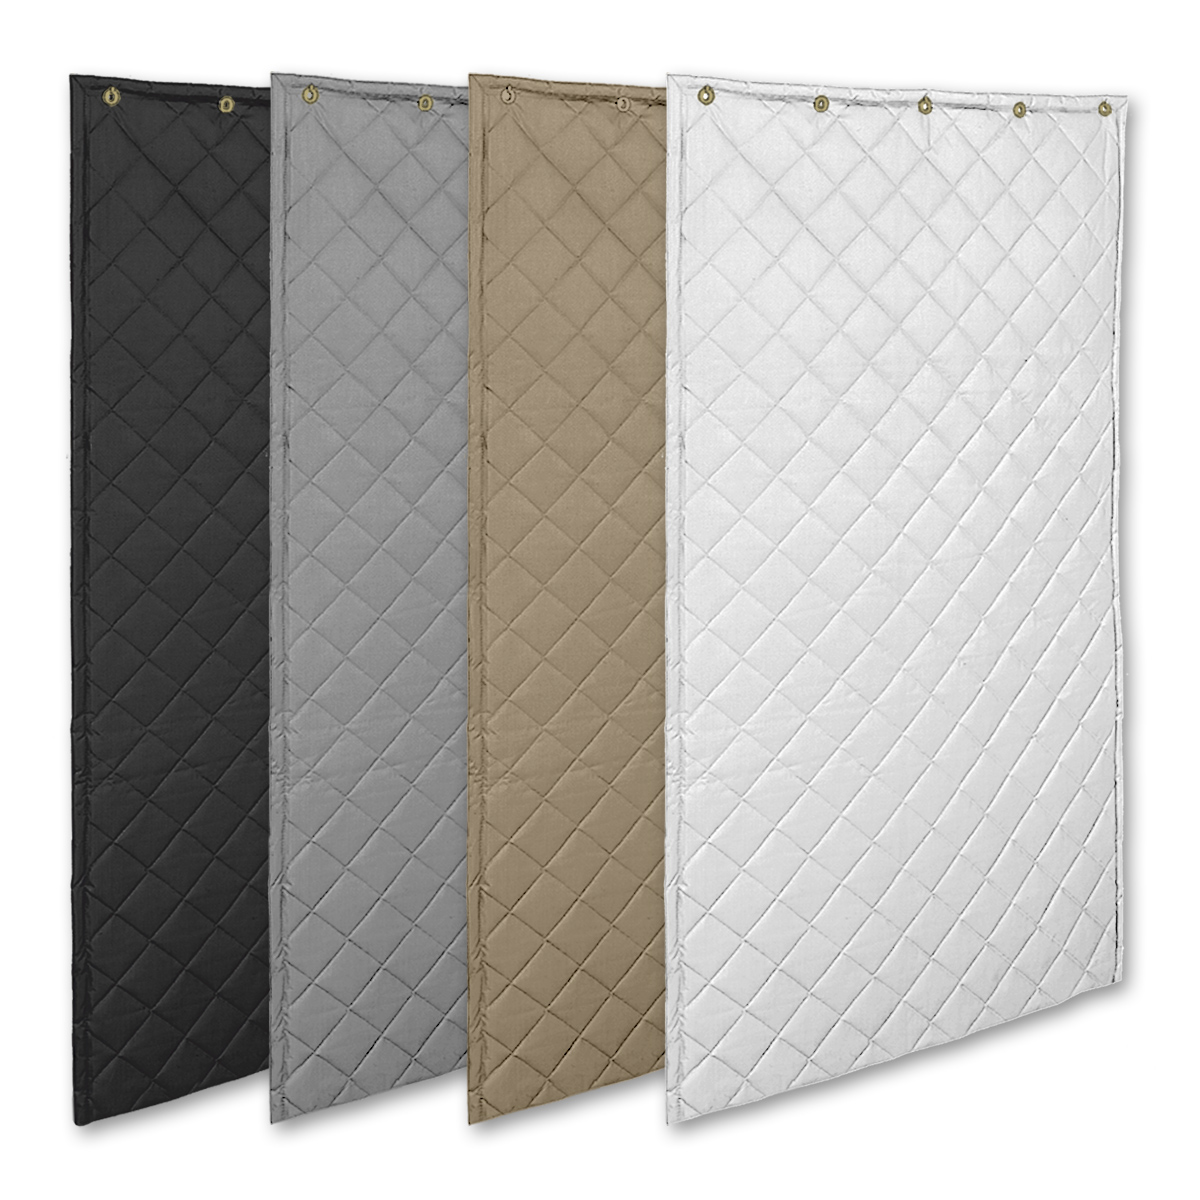 Combination Acoustic Blankets Panels Barriers Amp Curtains